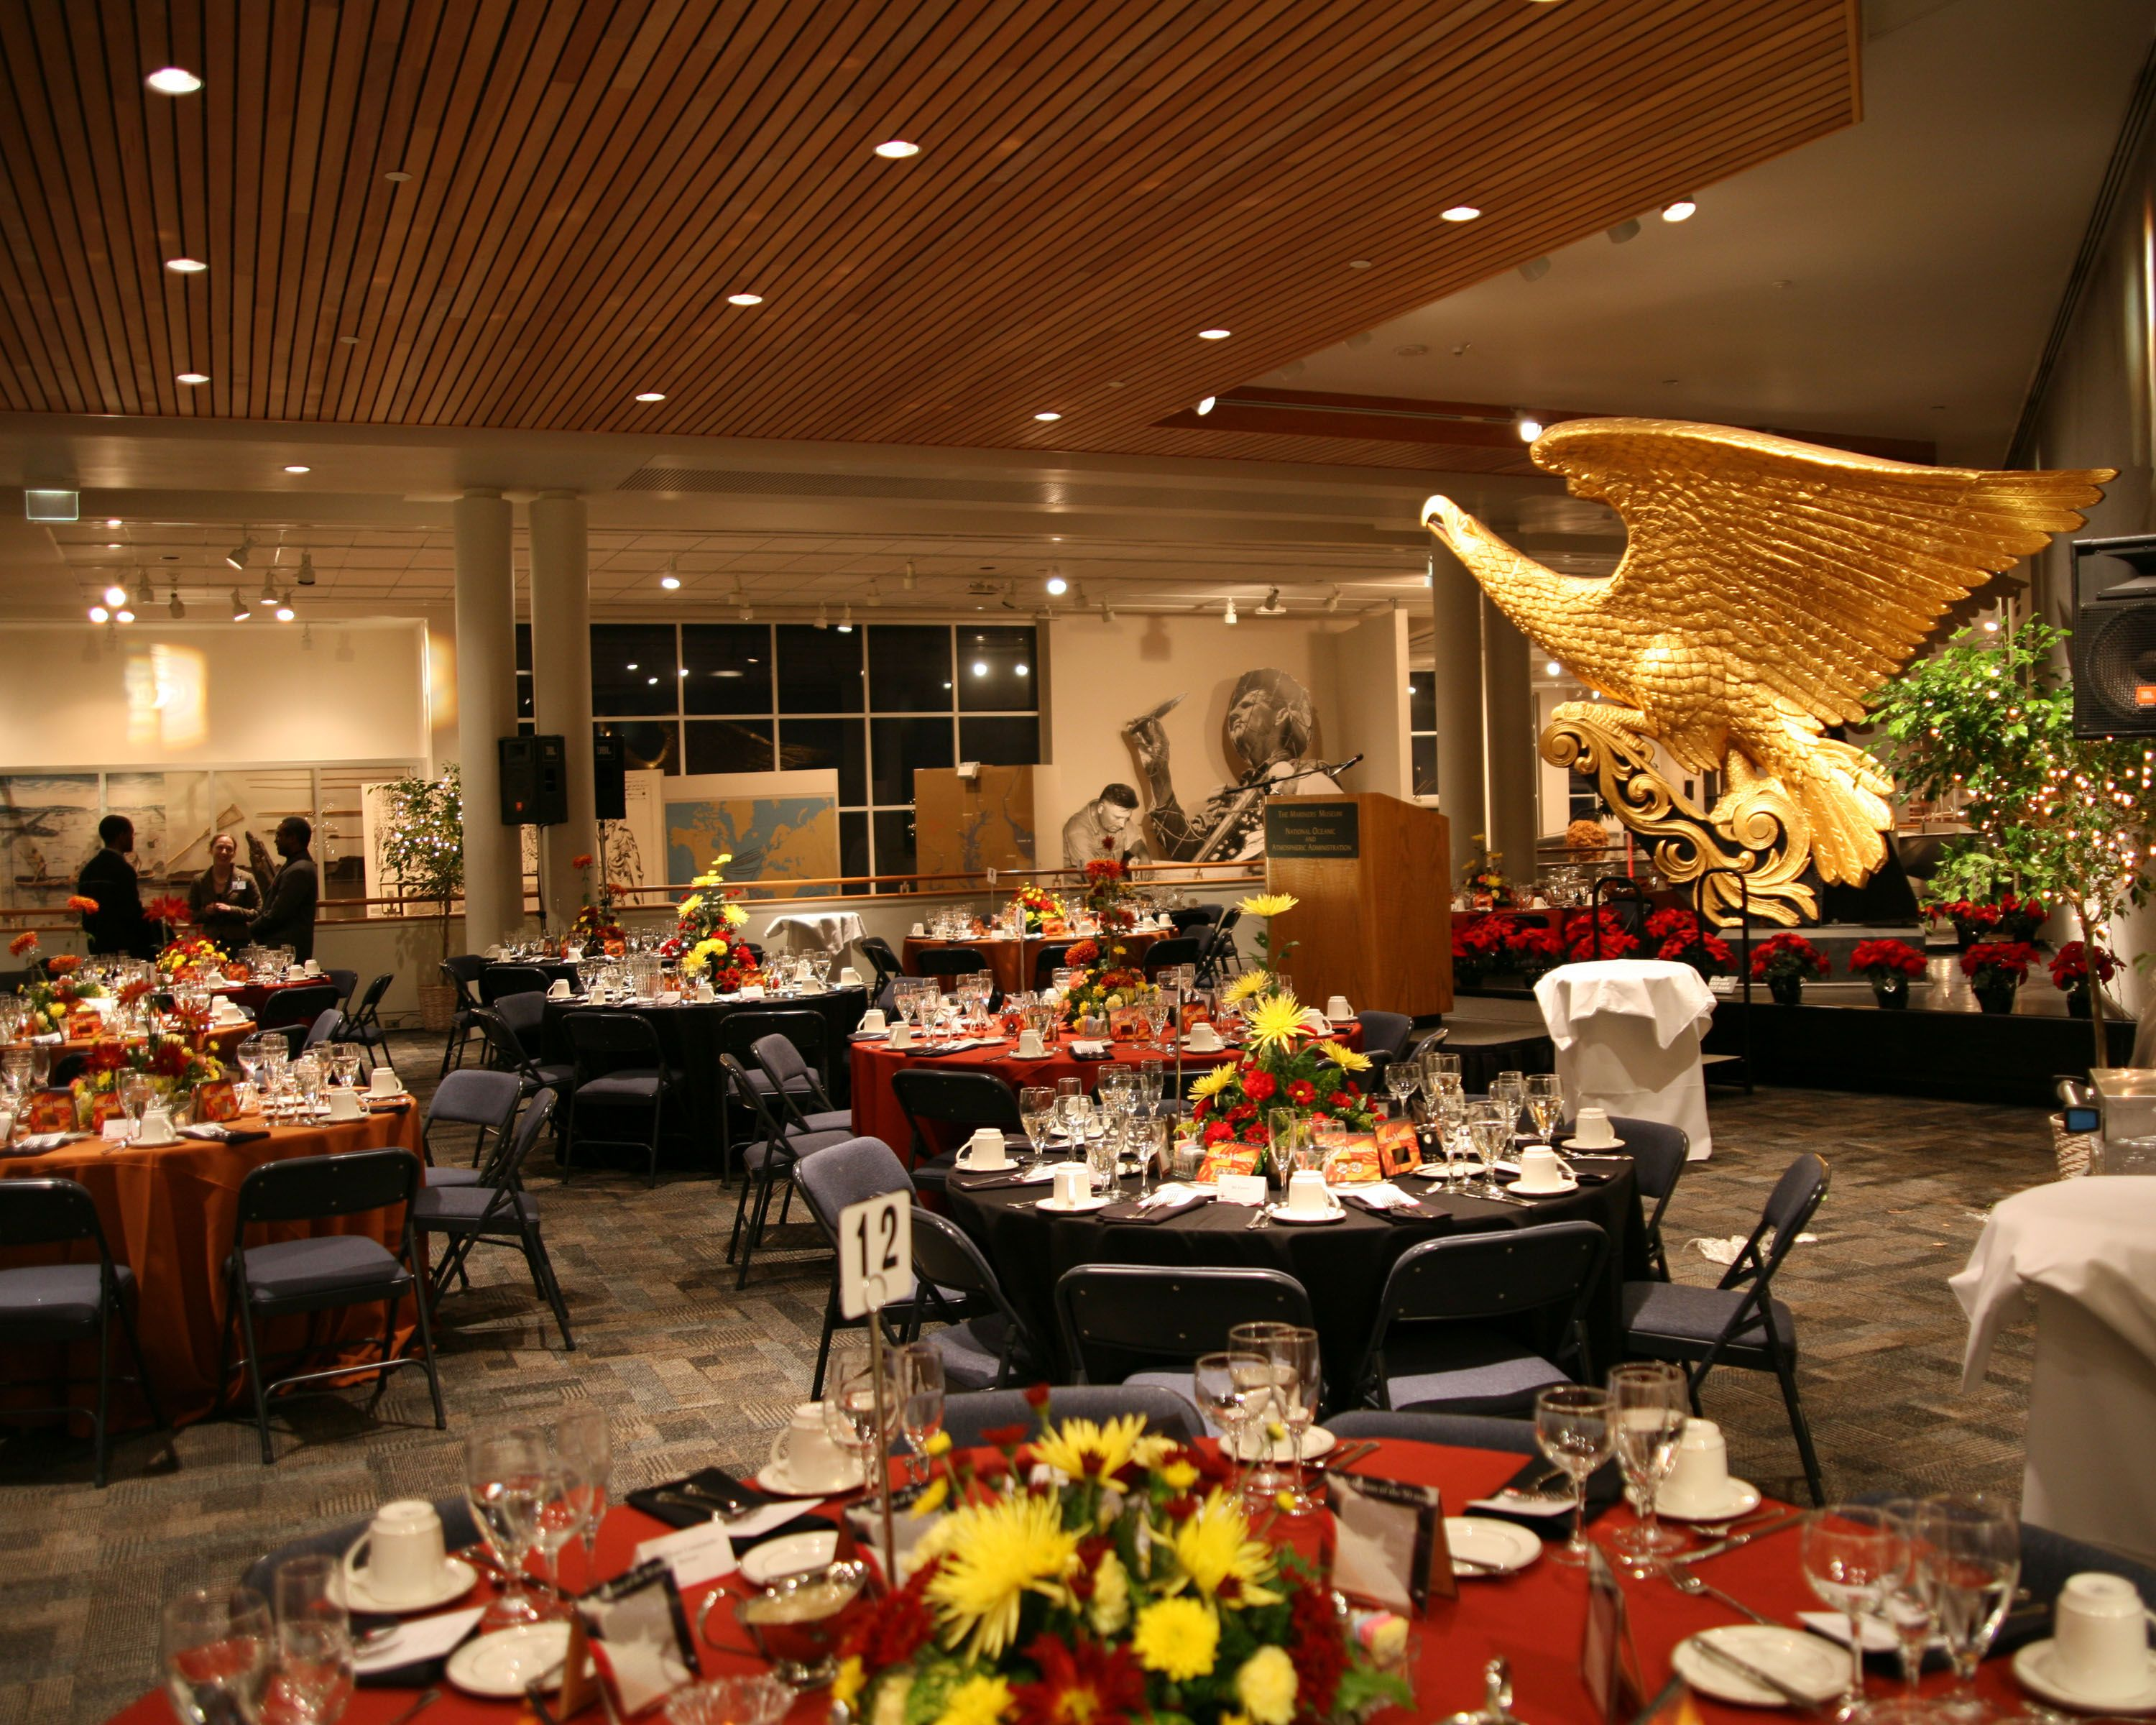 The Mariners' Museum - America's National Maritime Museum - photo courtesy of The Mariners' Museum http://www.marinersmuseum.org/event-rentals/wedding-ceremonies-and-receptions